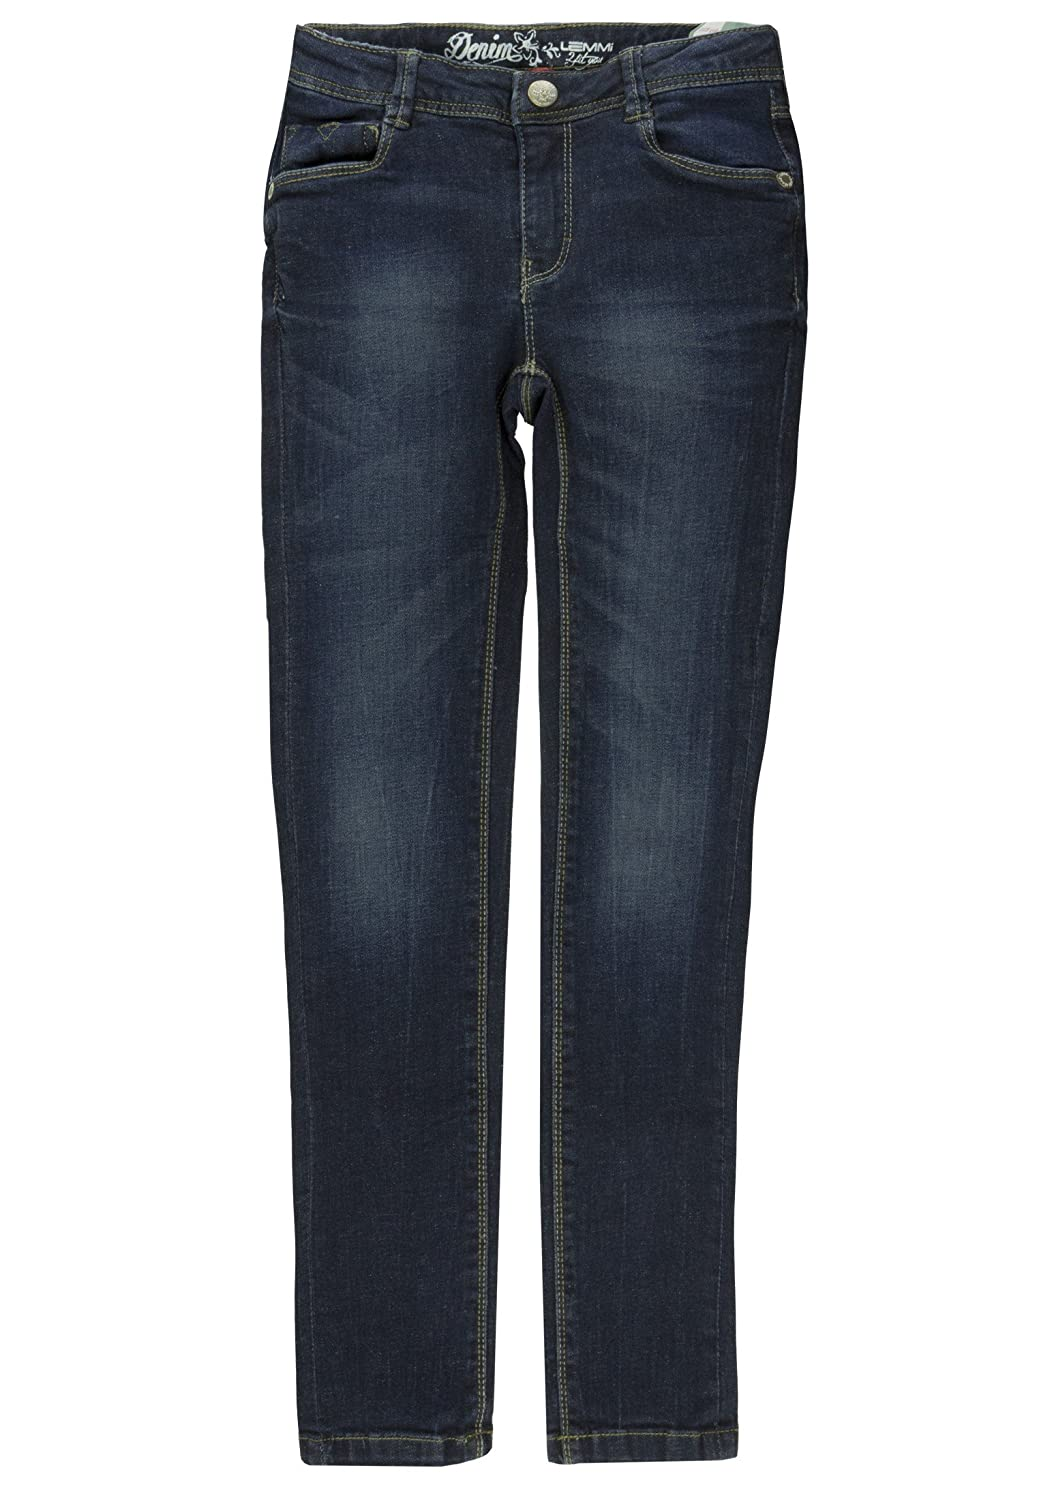 Lemmi Mädchen Jeggings Jeanshose SUPERSLIM Junior Brands Group 0009948008